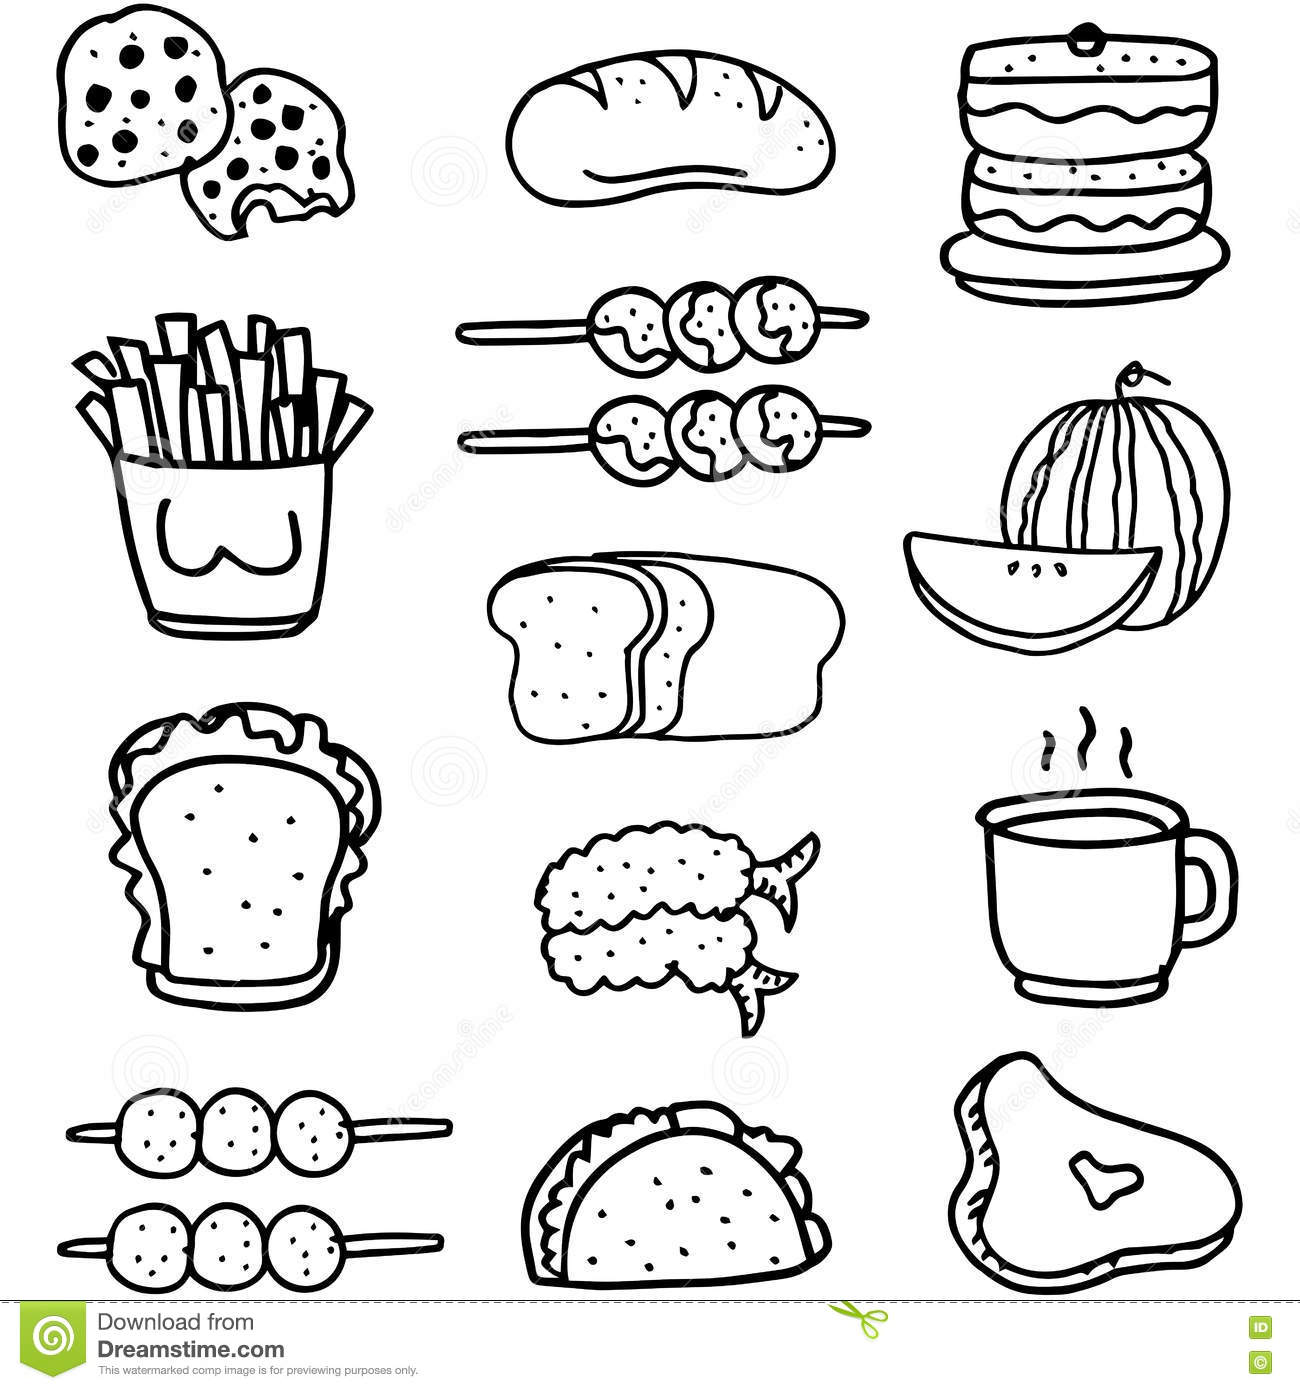 Is3mzstatic imagethumbpurple122v473ca11 cartoon fruit drawings doodle food set hand draw vector art 79500584 how do you draw